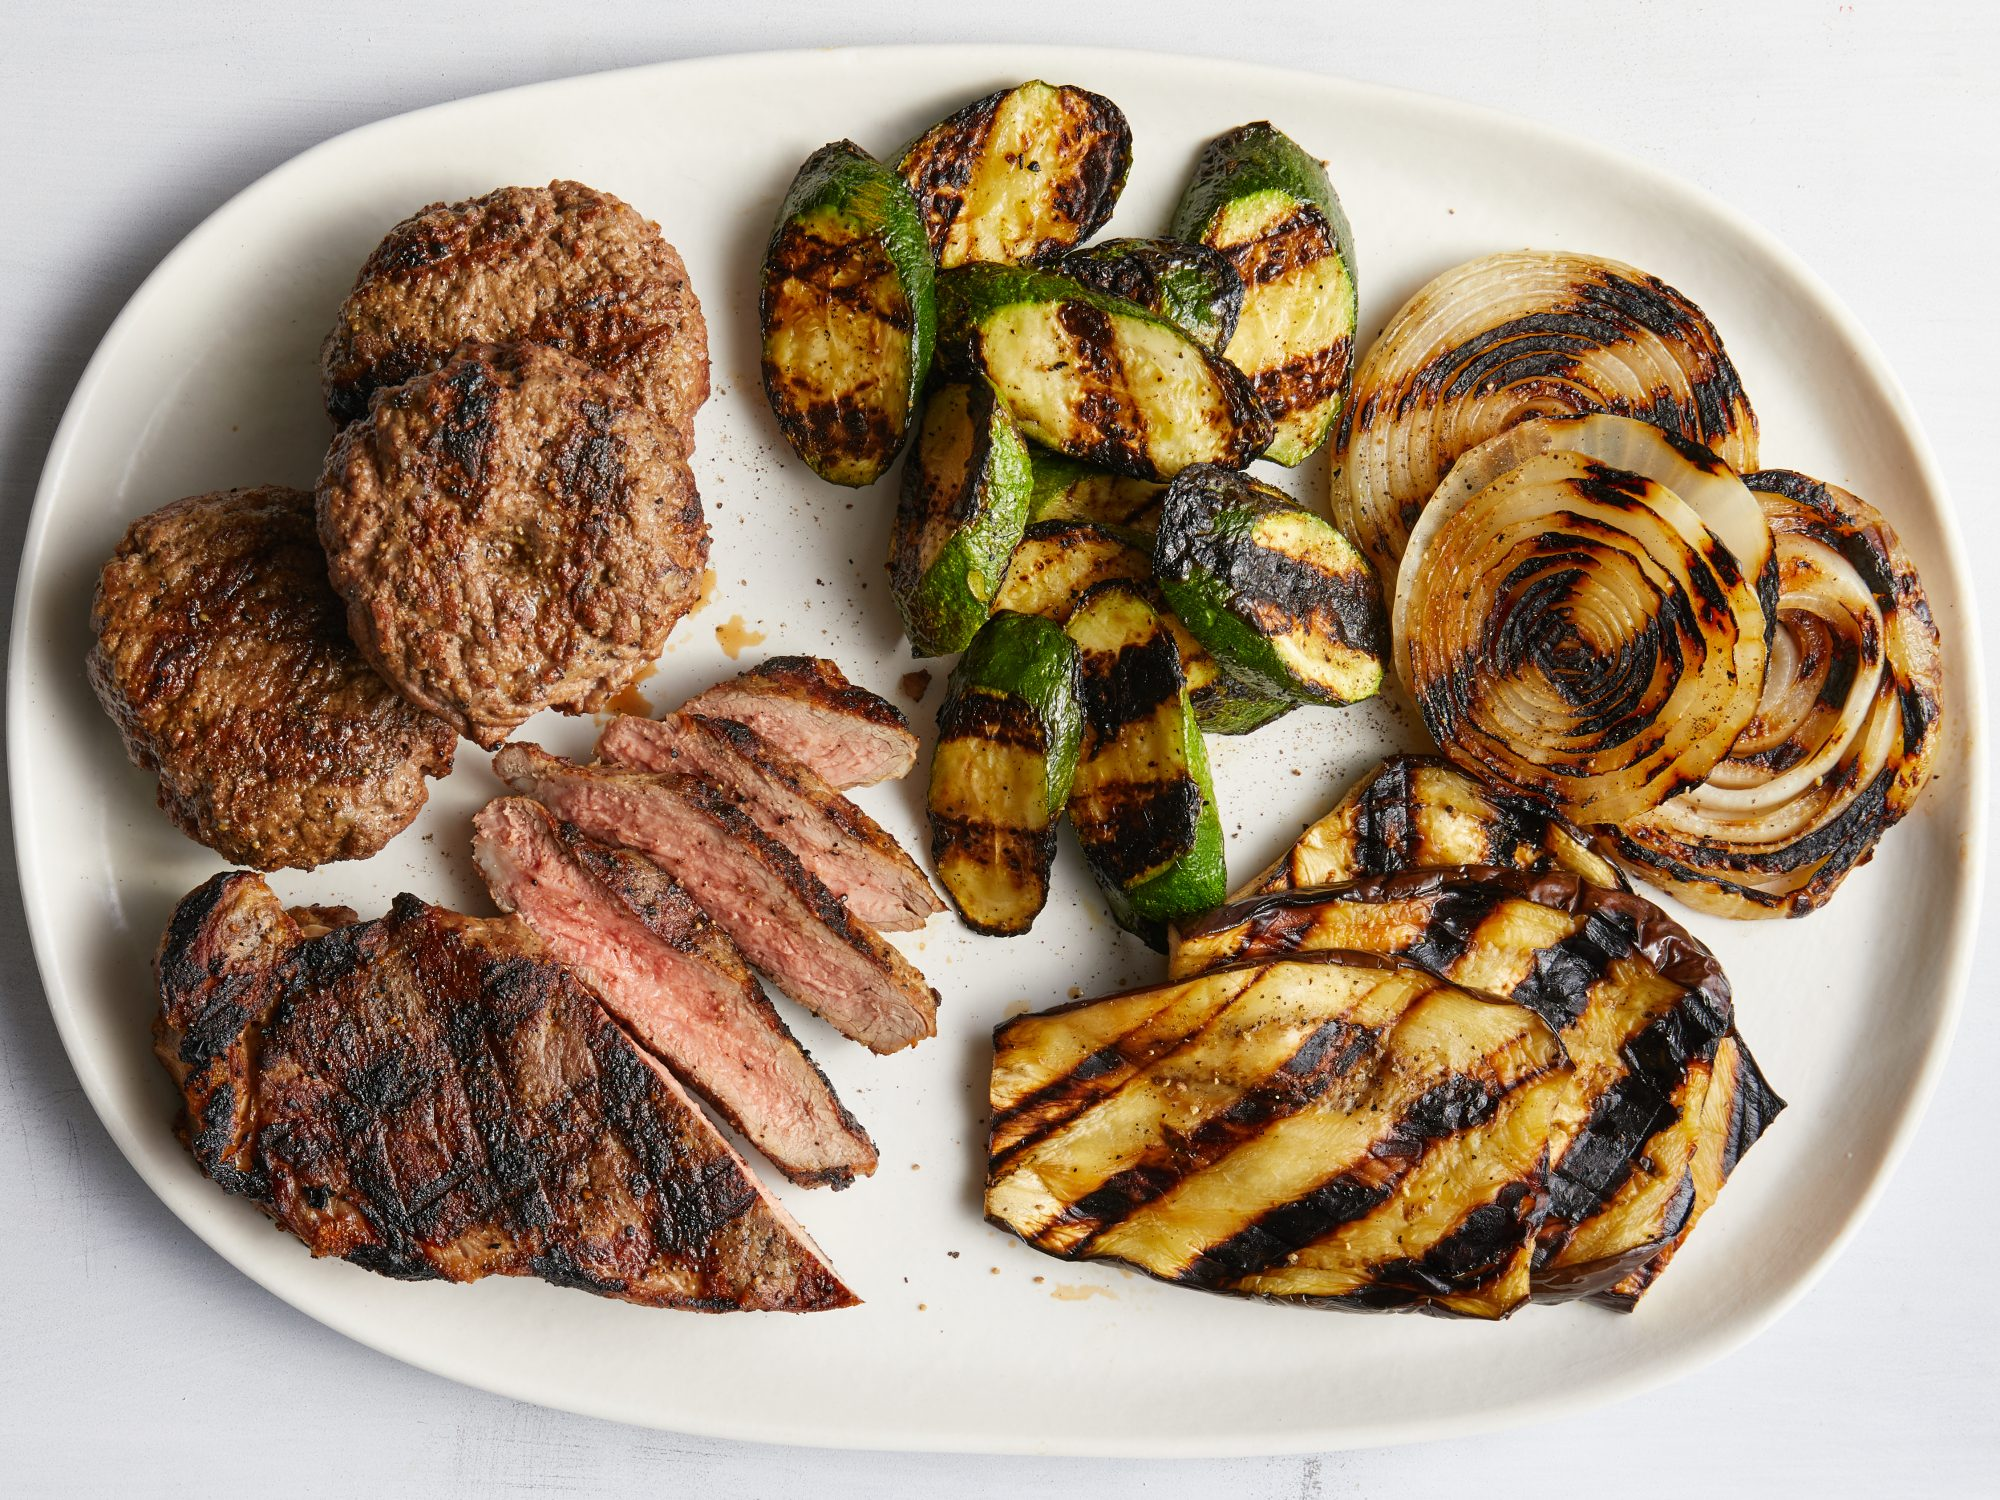 Mr Steak Grill Review Beef and Veggies  Image